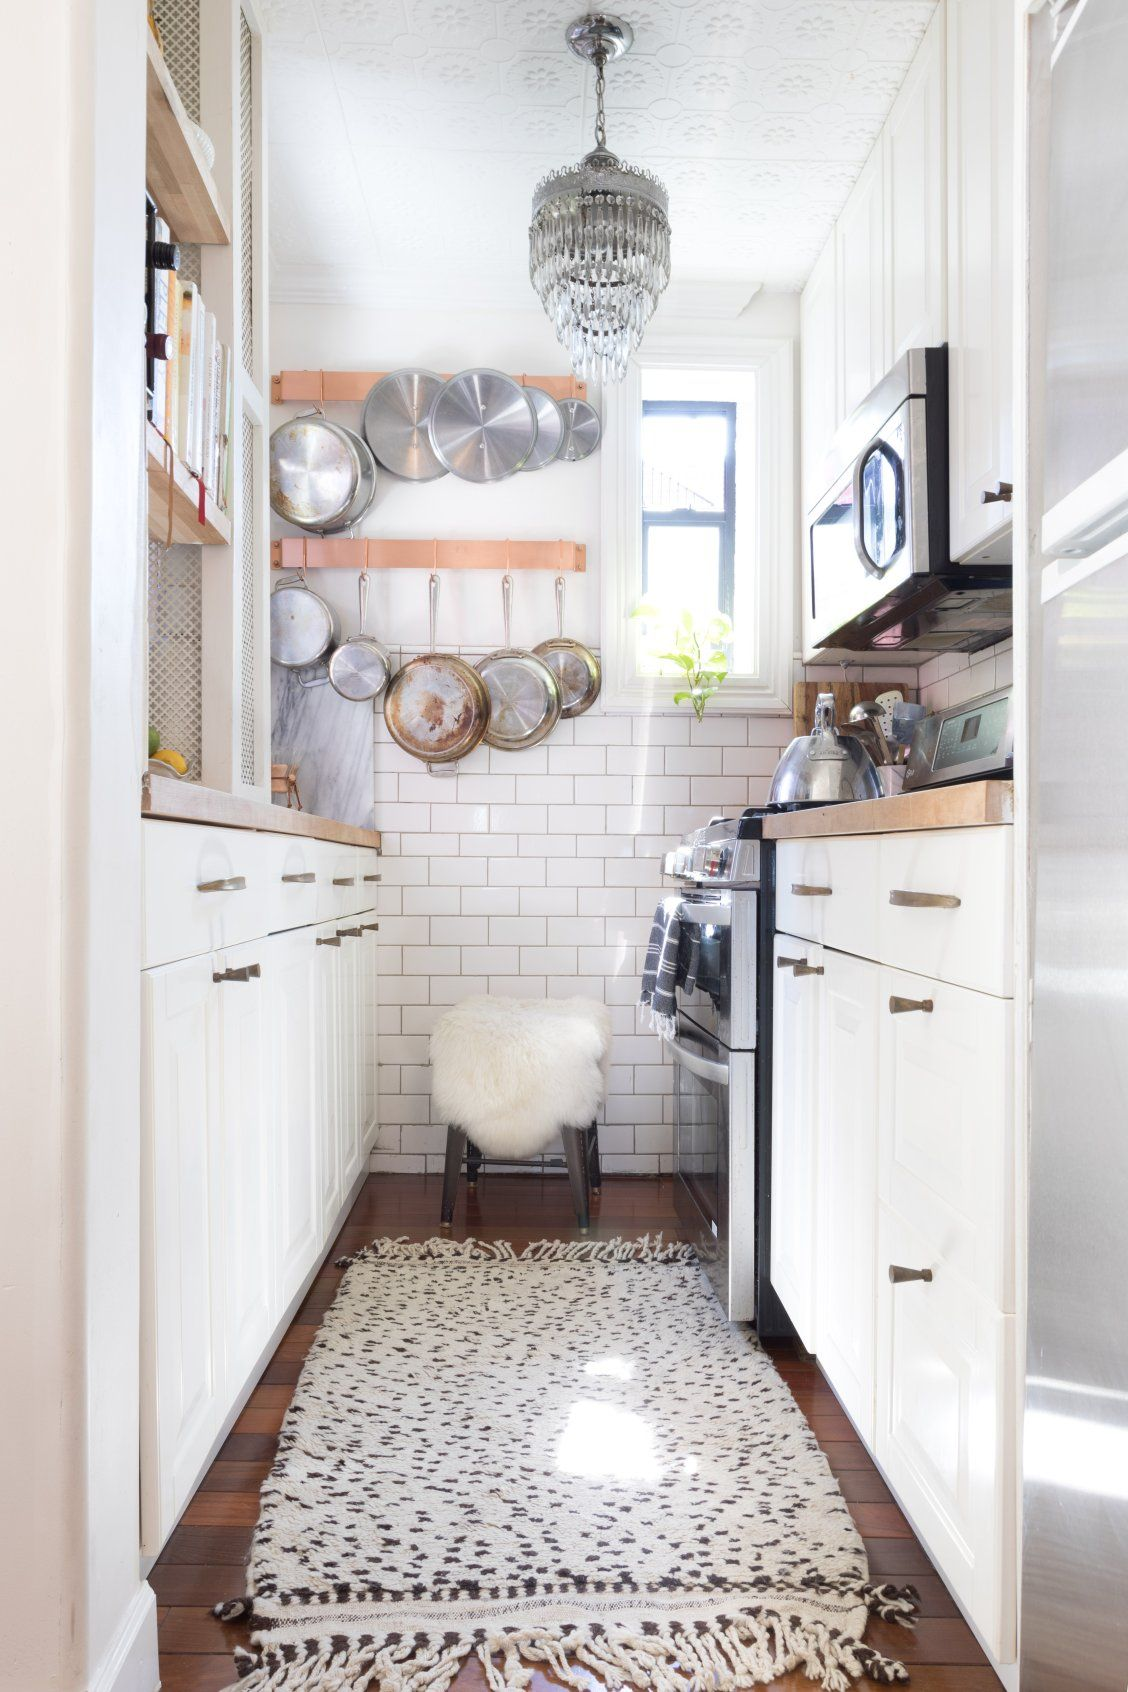 This Kitchen Remodel Feels Much Bigger than 38 Square Feet | Küchen ...